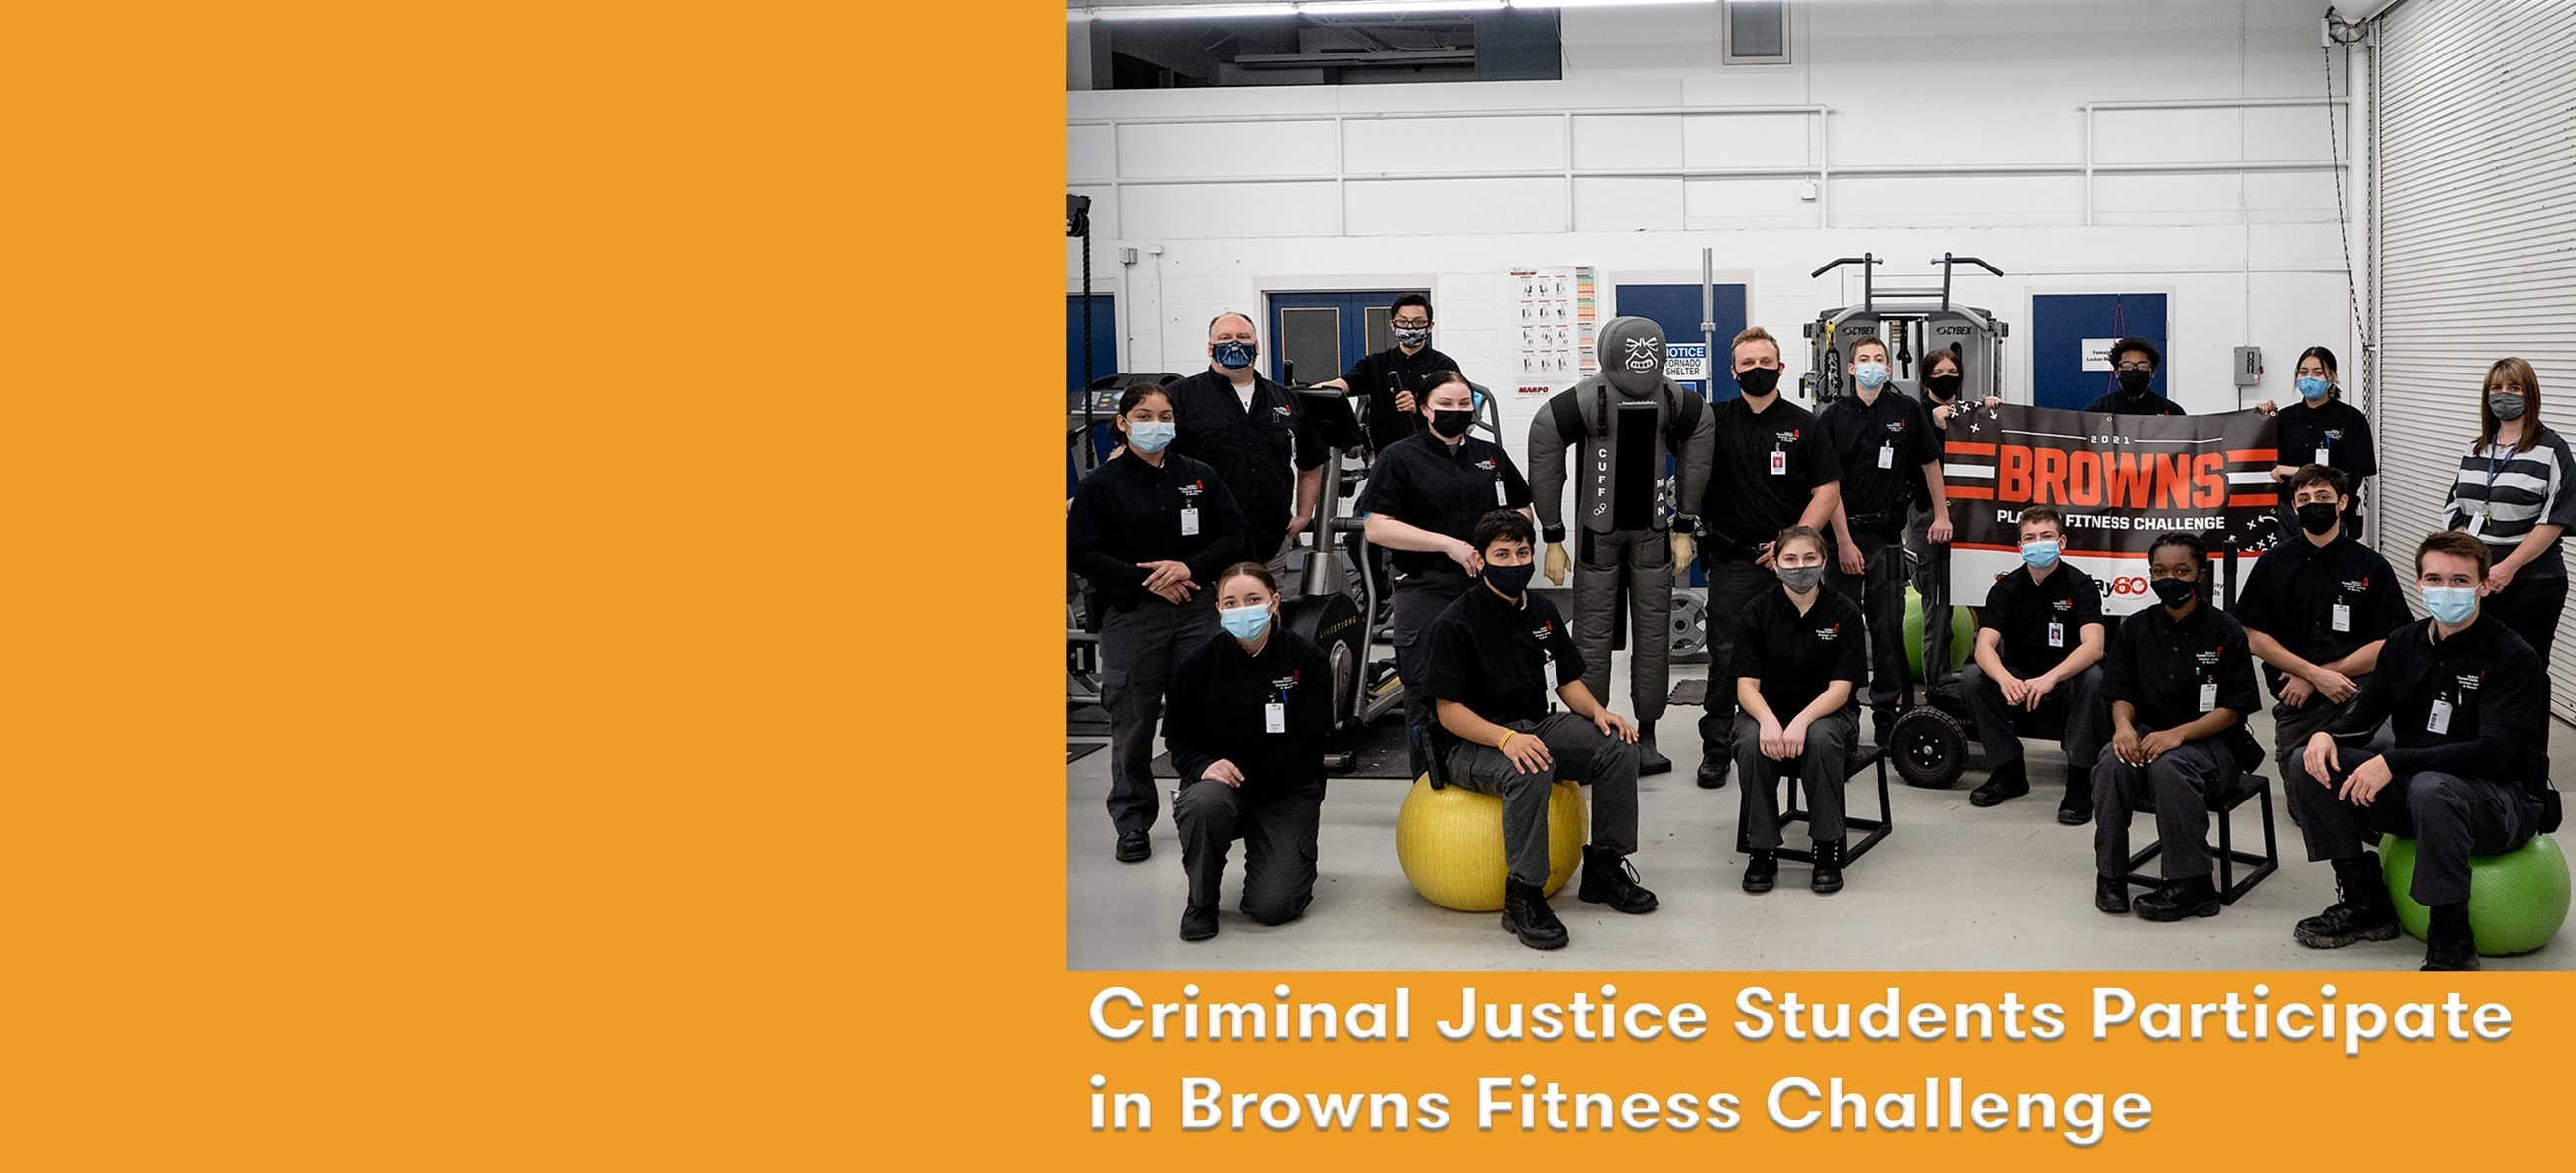 students in uniform standing and sitting on exercise equipment with Browns banner